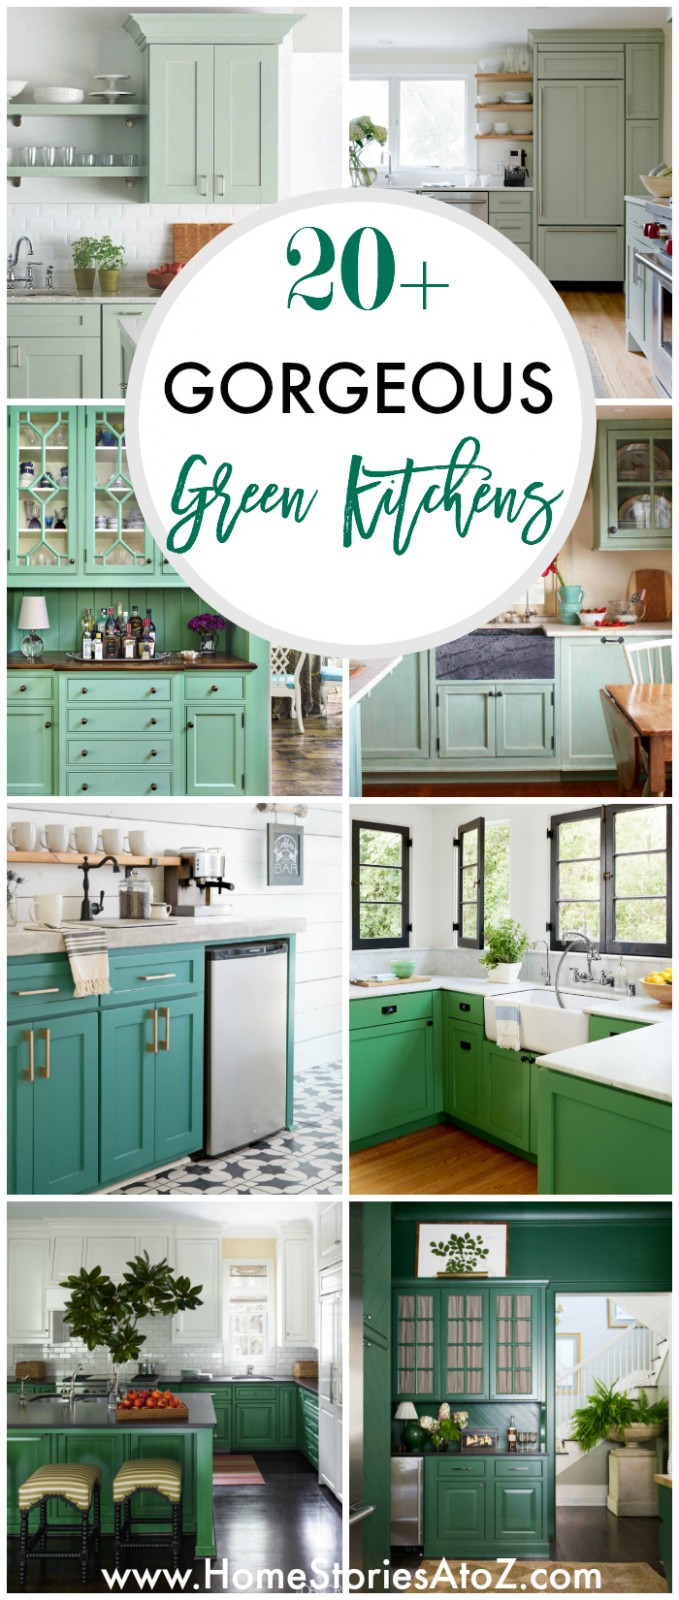 11+ GORGEOUS GREEN KITCHEN CABINET IDEAS - Kitchen Cabinet Color Trends 2012